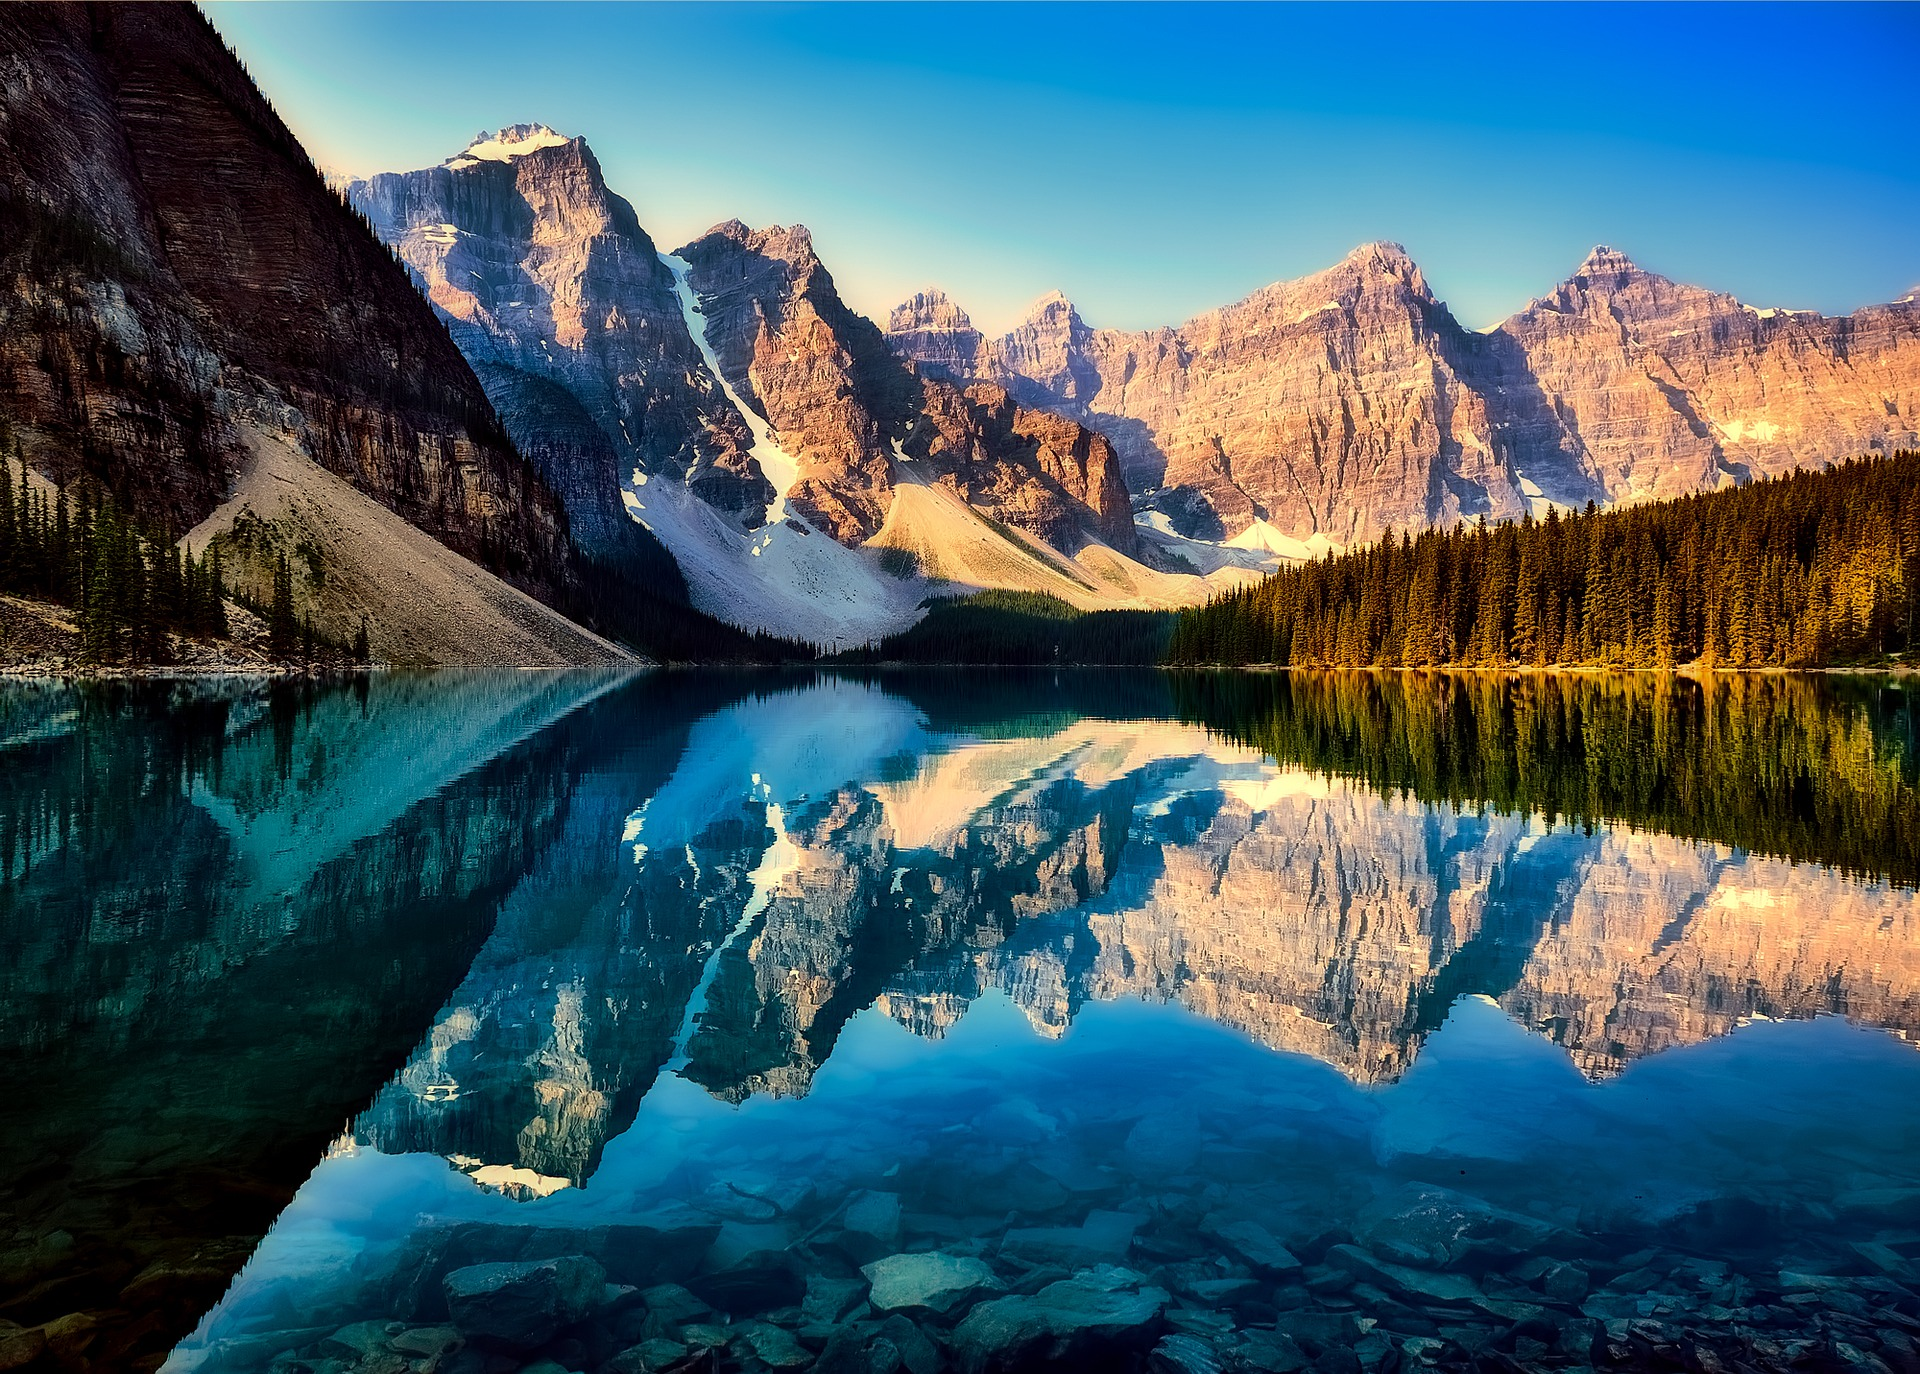 Royalty-Free image from Pixabay https://pixabay.com/en/moraine-lake-reflections-canada-2686353/